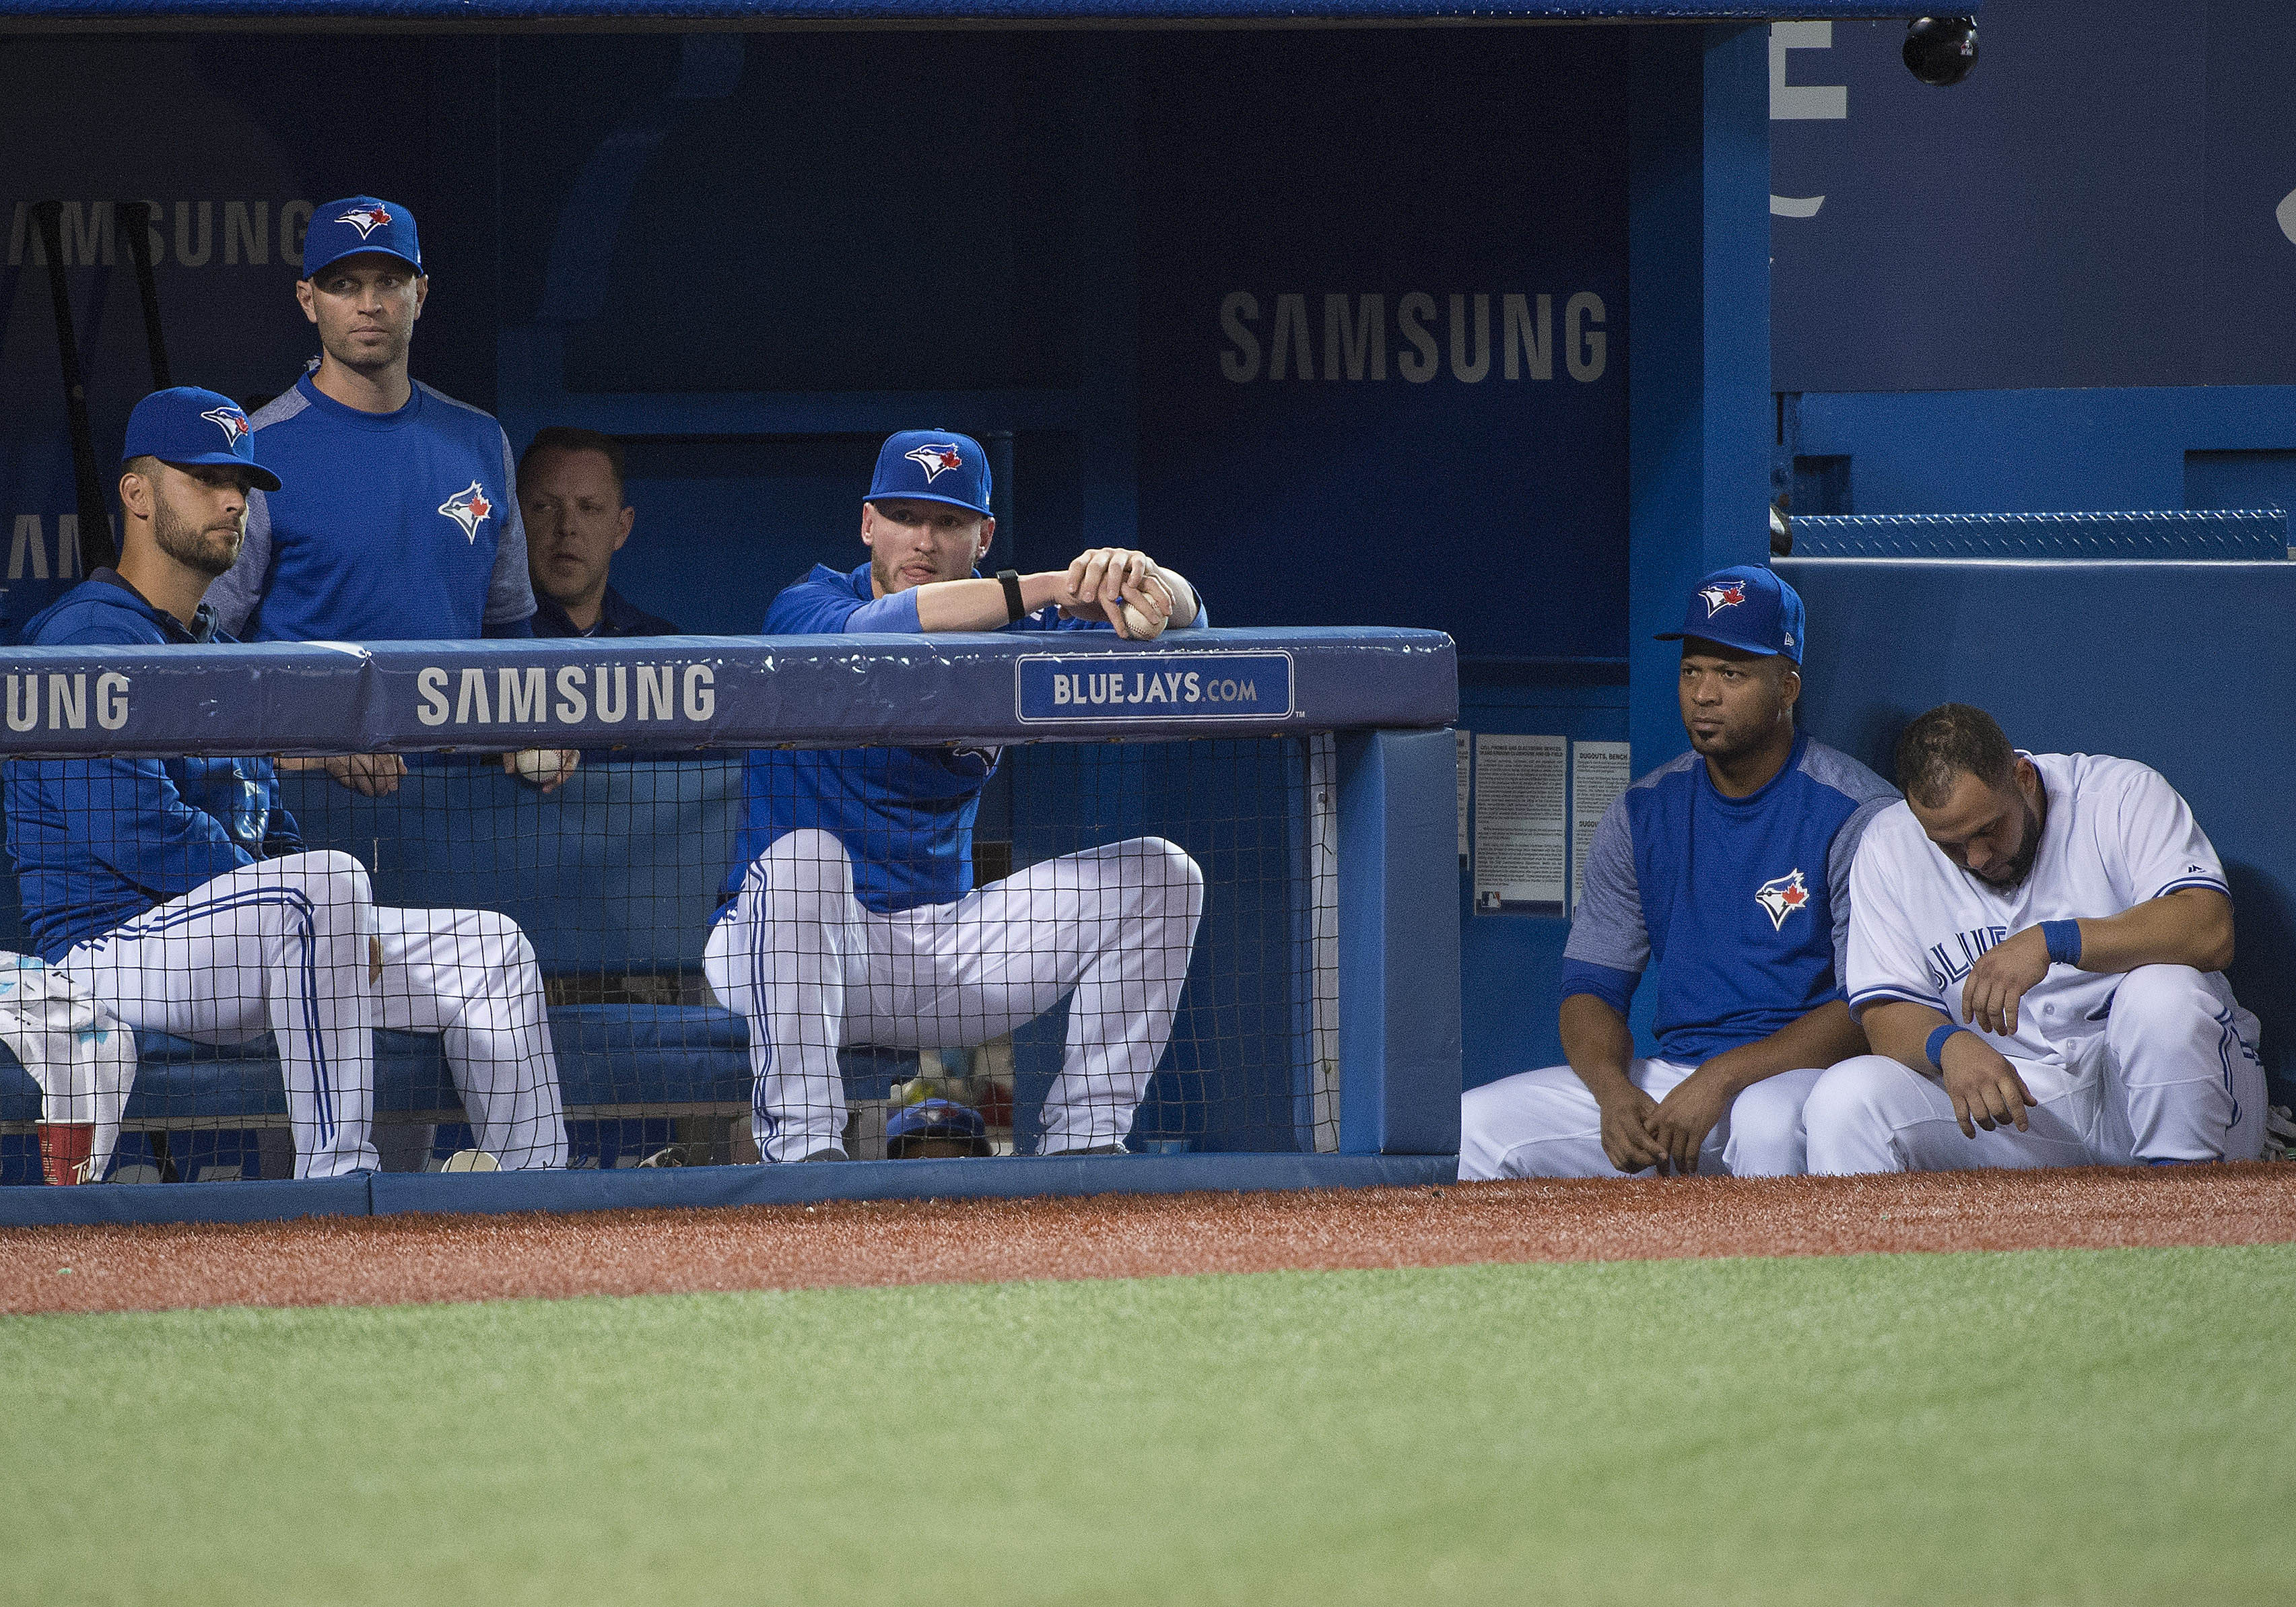 10011214-mlb-baltimore-orioles-at-toronto-blue-jays